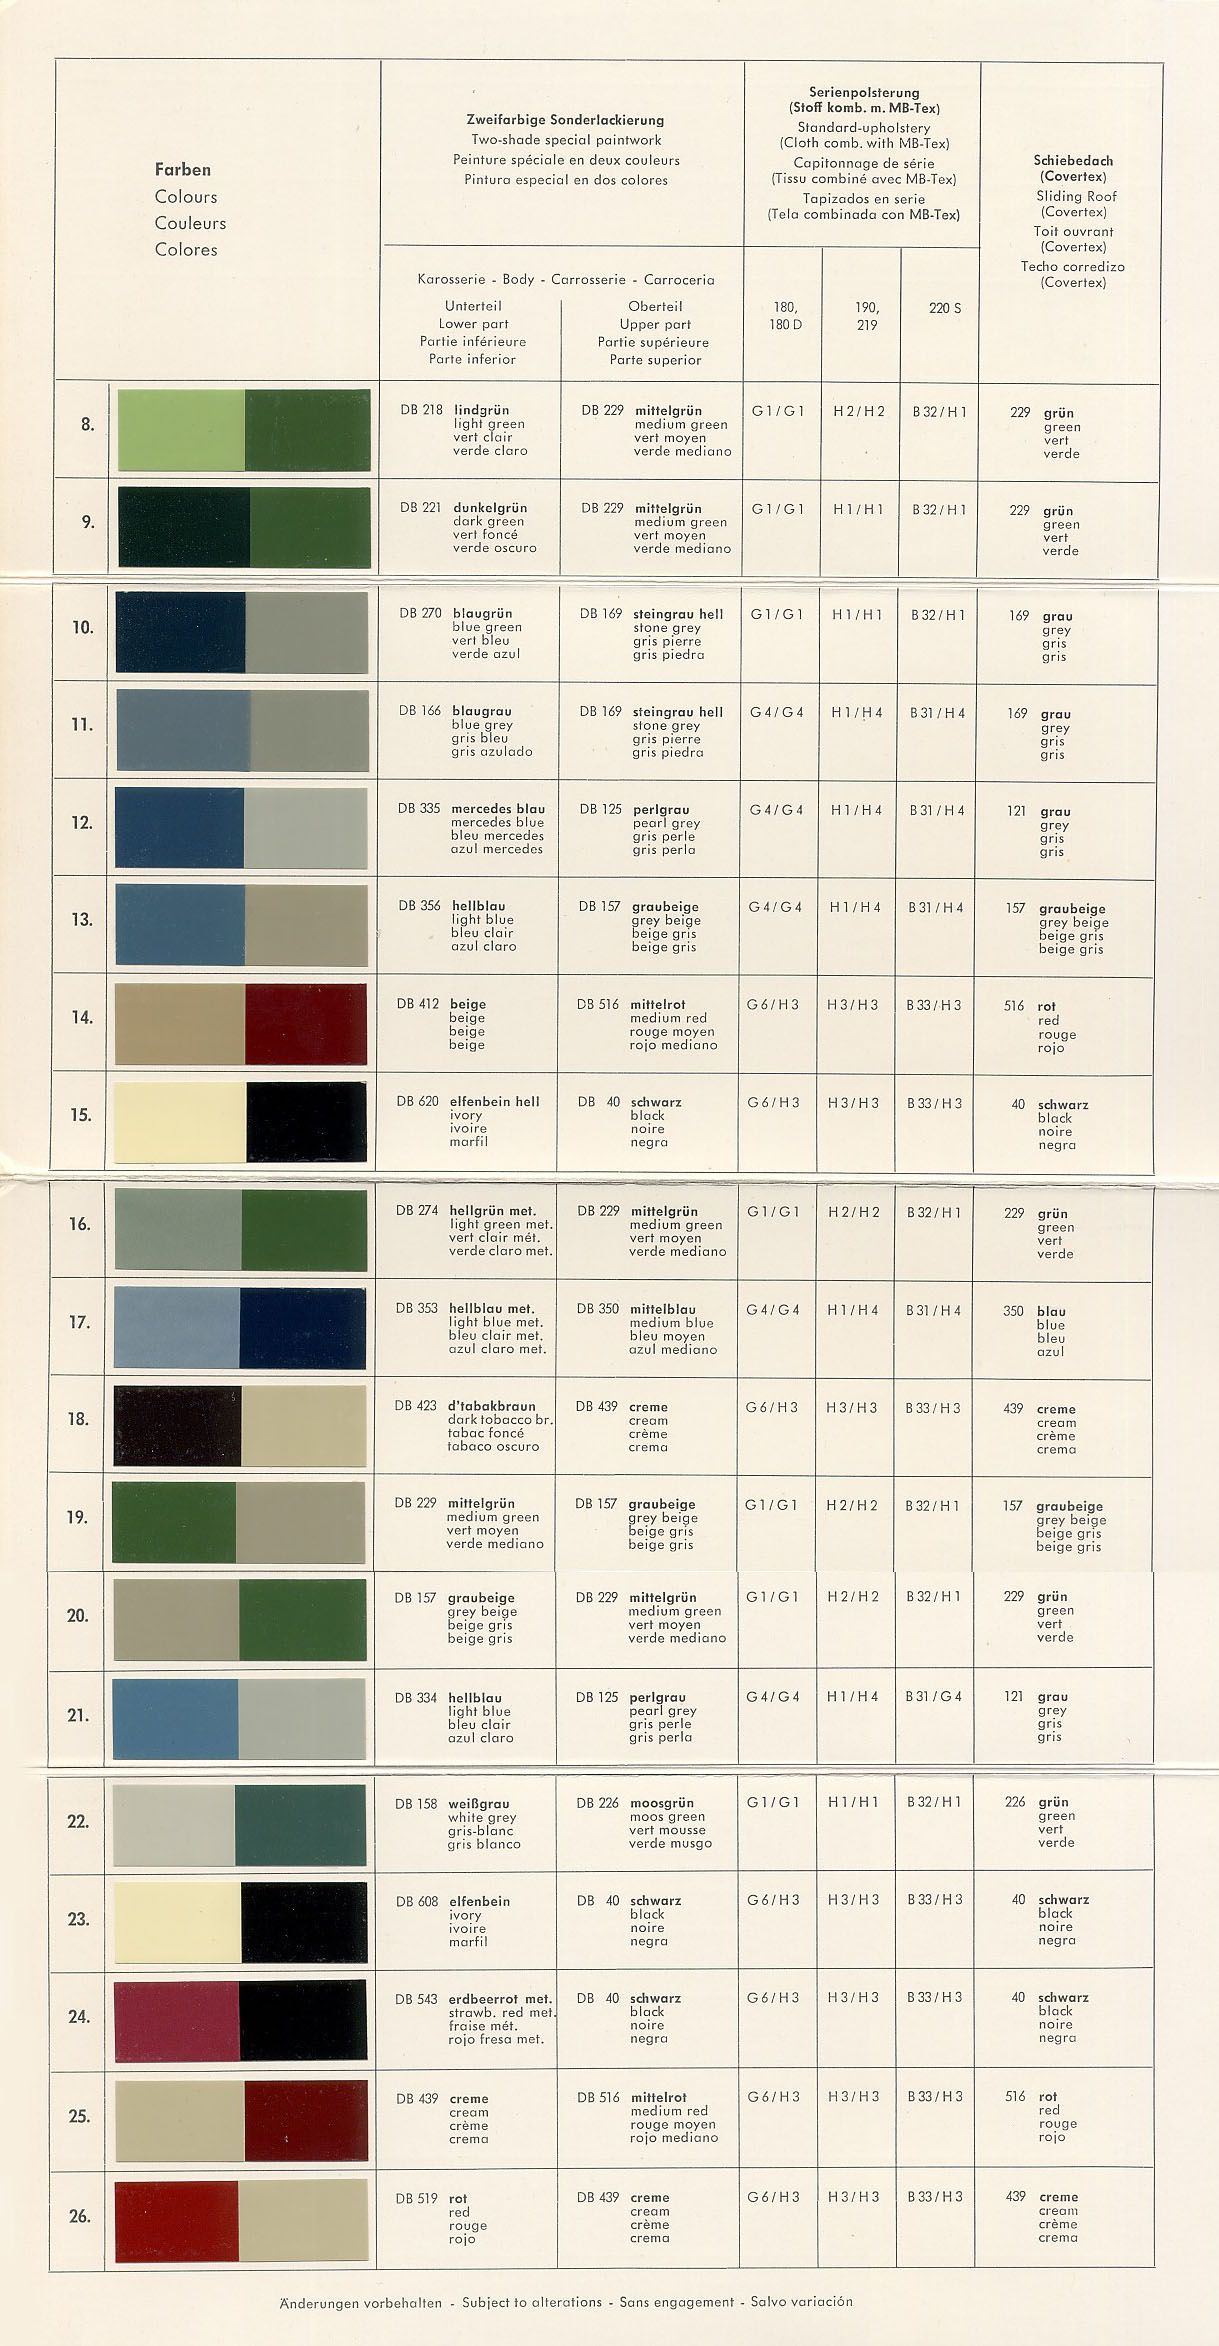 House Wiring Colour Codes Auto Electrical Diagram Mercedes Benz Colours Ponton Paint Color Charts U00a9 Www Mbzponton Org W128 180 Code Chart India